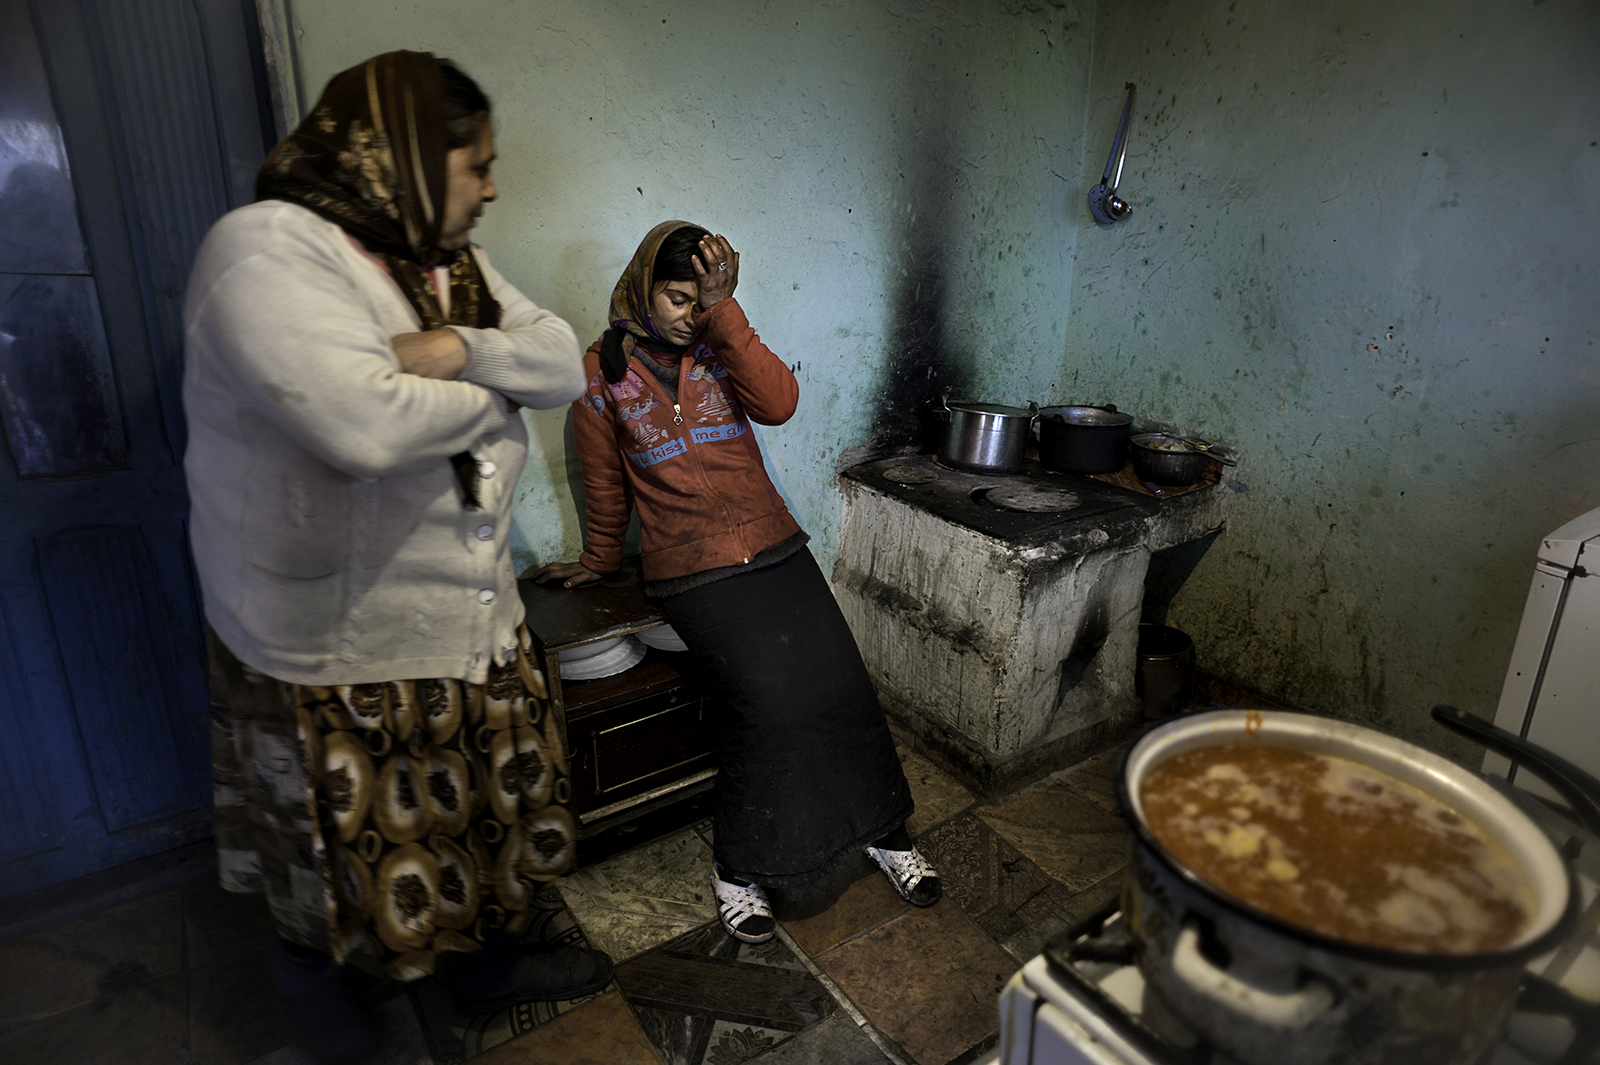 Complaining of stomach pains Viorica Gulie, 31, takes a break from cooking soup for her family as her mother-in-law Constanta Gulie, 58,  looks on at left.  She suffers from Gastritis of her stomach.  With no money for medication or to go to the hospital she has to live in pain. Their house which has no running water or a bathroom is built on state land and they don't have title deeds so they are in fear of being evicted.  Photo taken in Slatina, Romania.©  Renée C. Byer